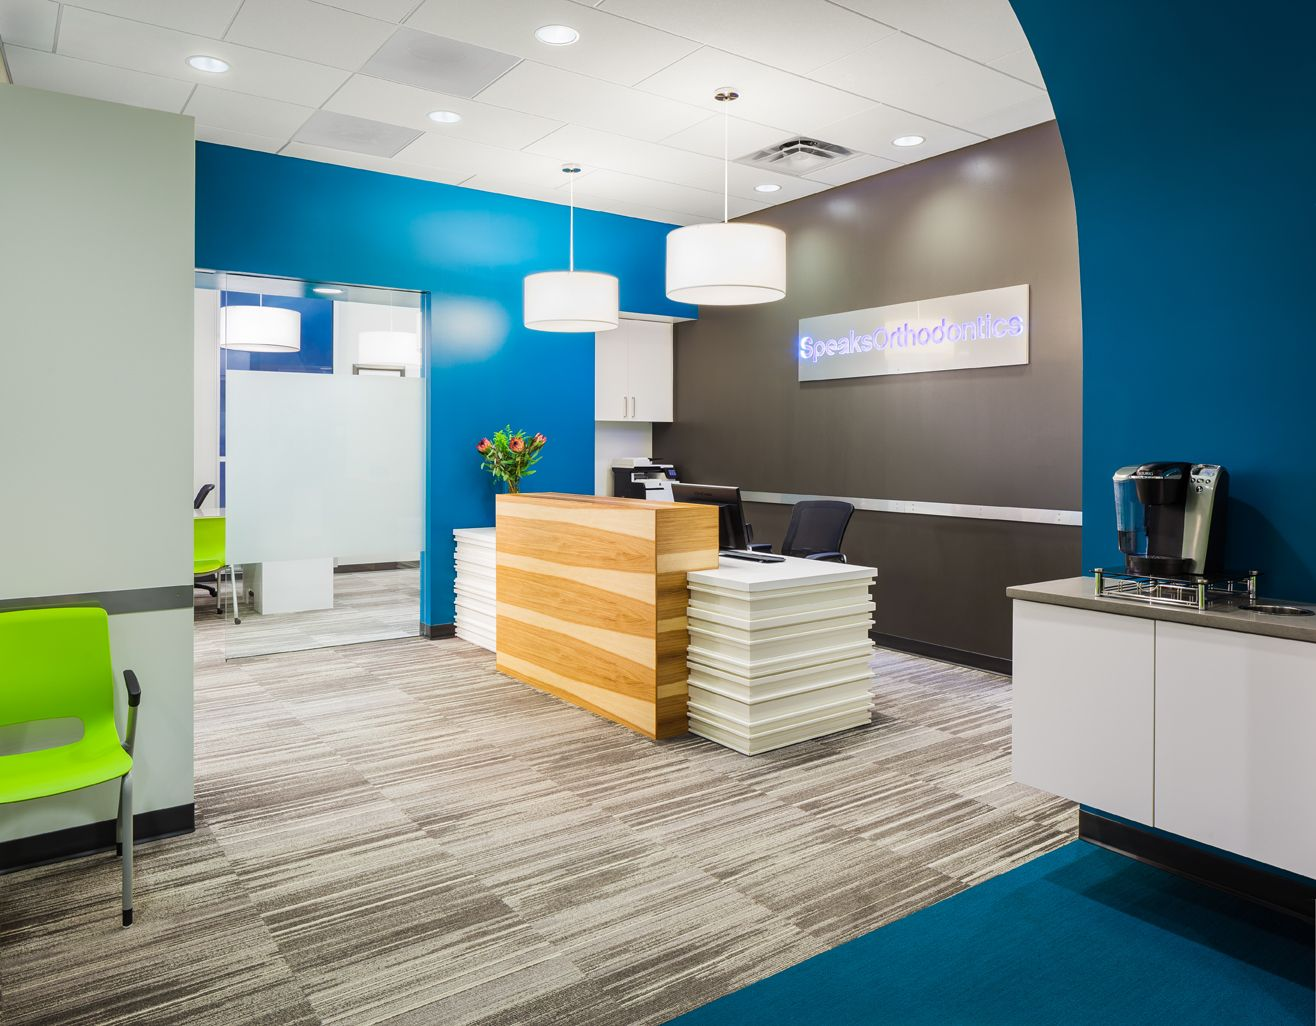 Speaks Orthodontics | Dental office design, Modern house ...